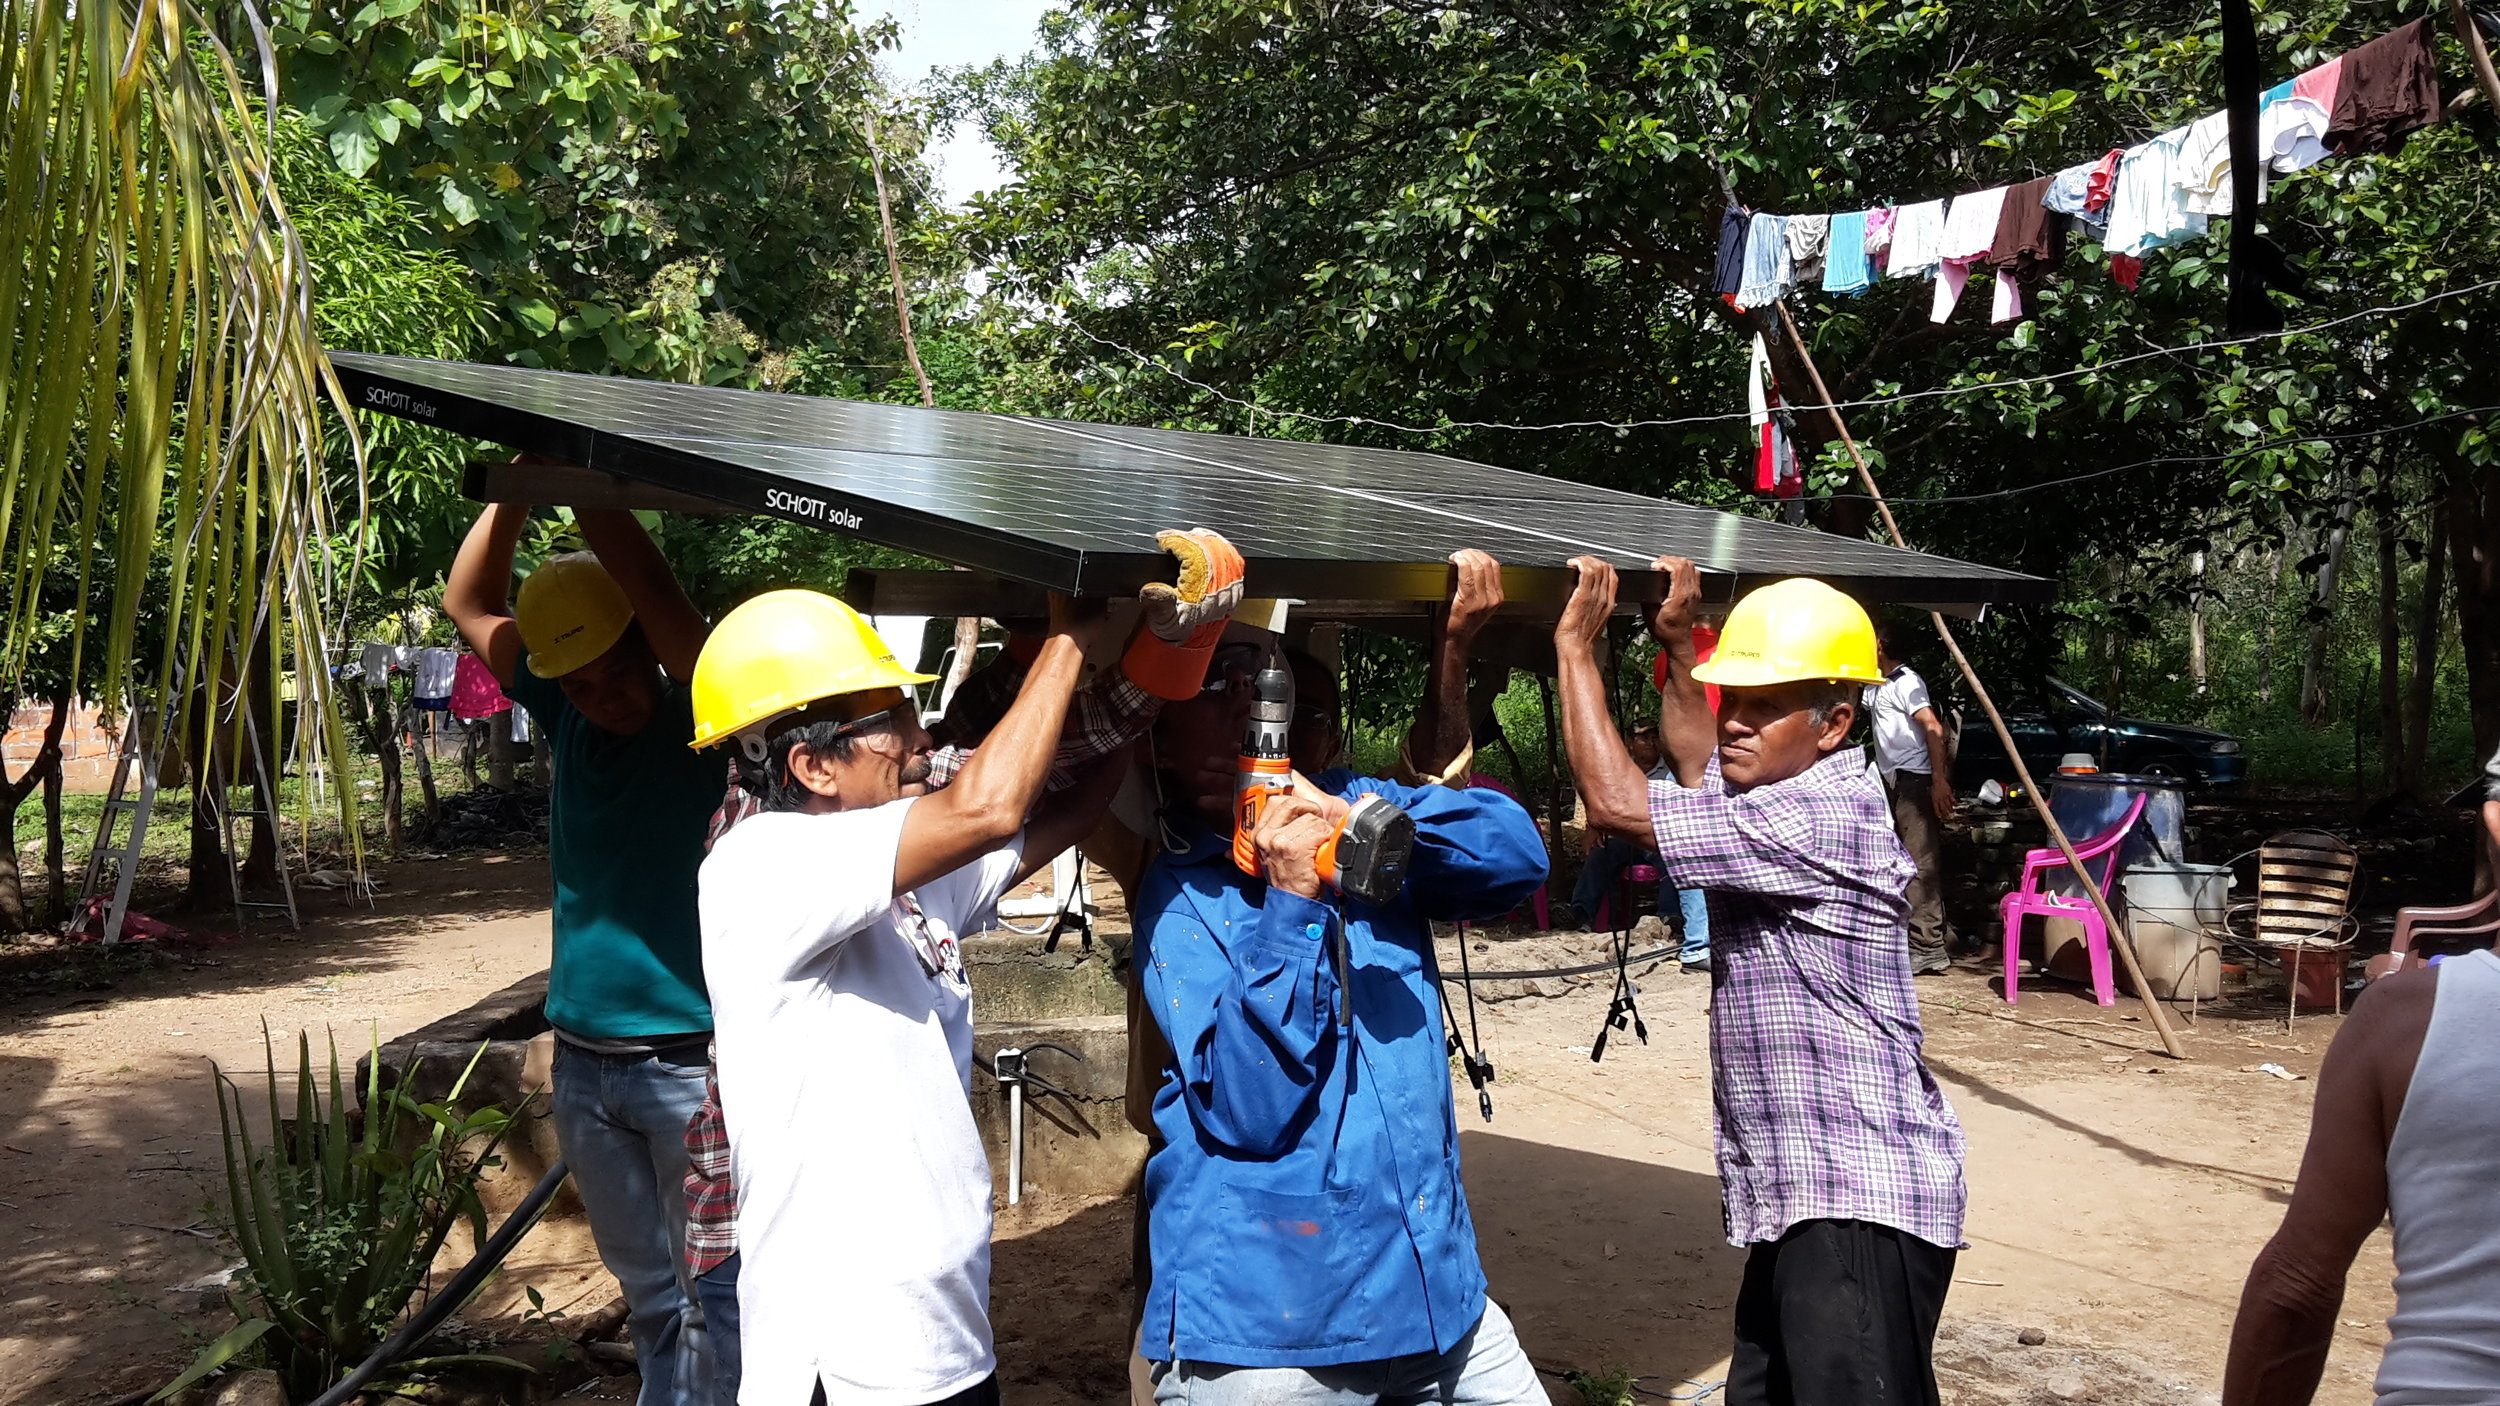 Solar Pump system installed in a Nicaraguan community